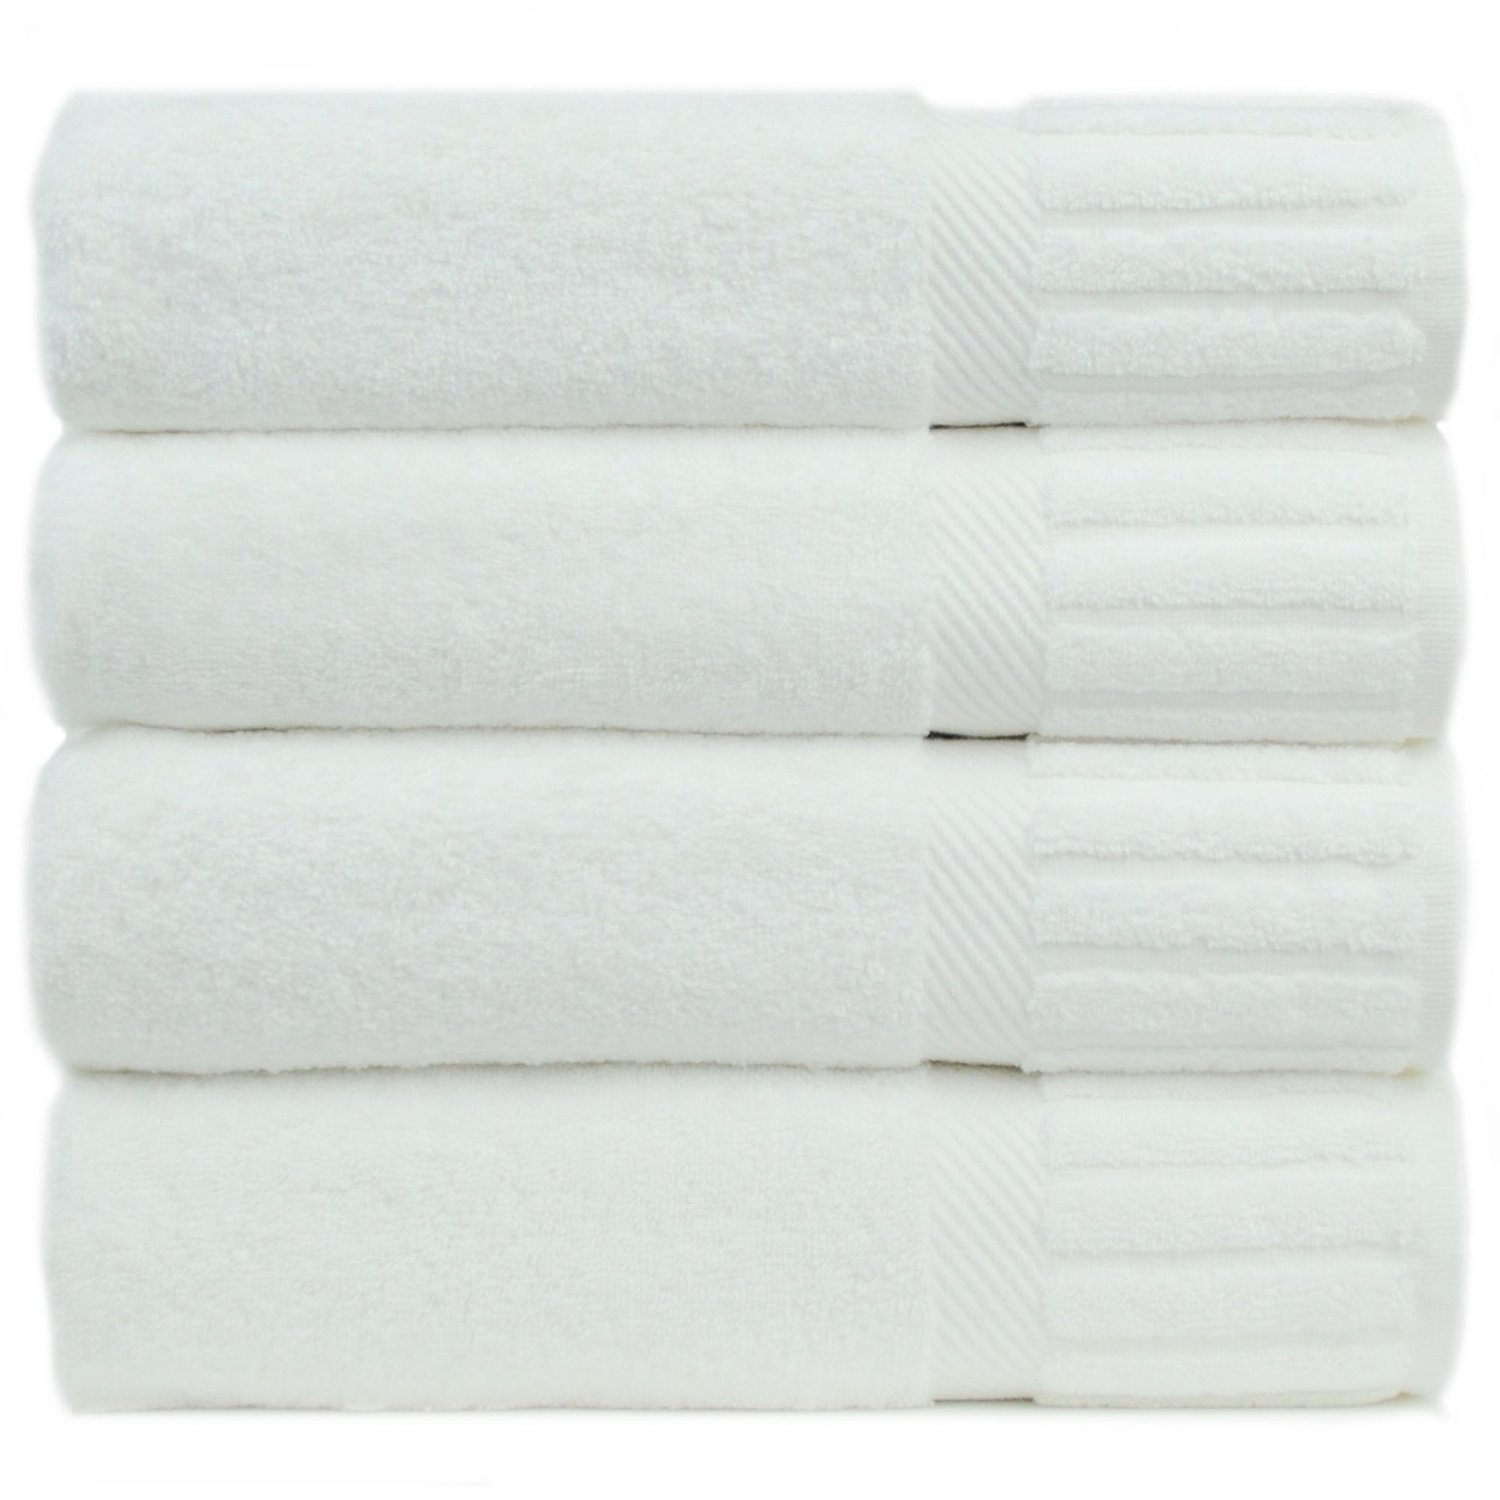 Bare Cotton Turkish Cotton Bath Towels, White, Piano, Set of 4 review